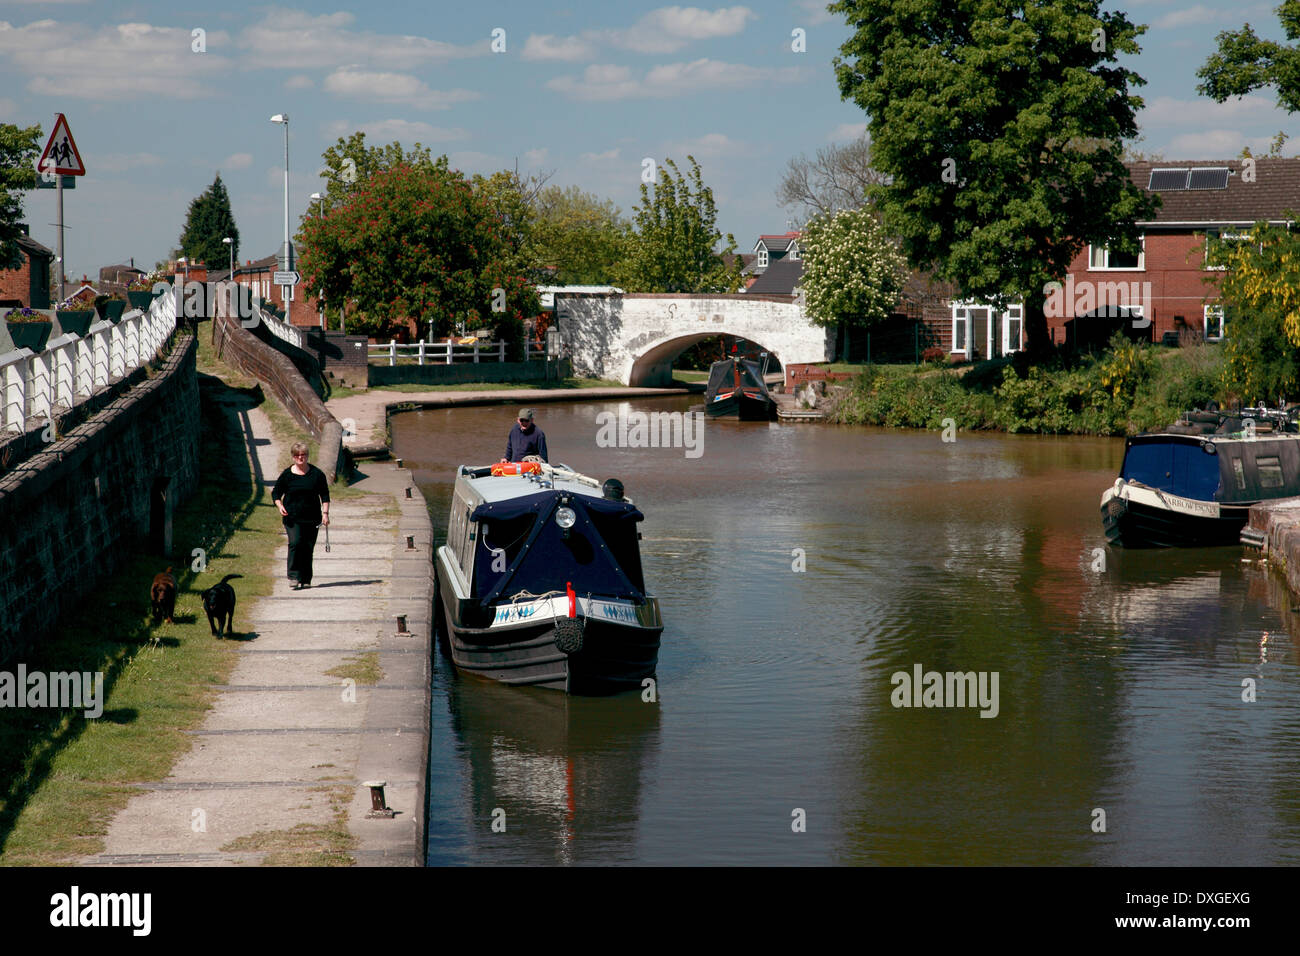 A narrowboat about to enter Kings Lock on the Trent and Mersey Canal at Middlewich - Stock Image